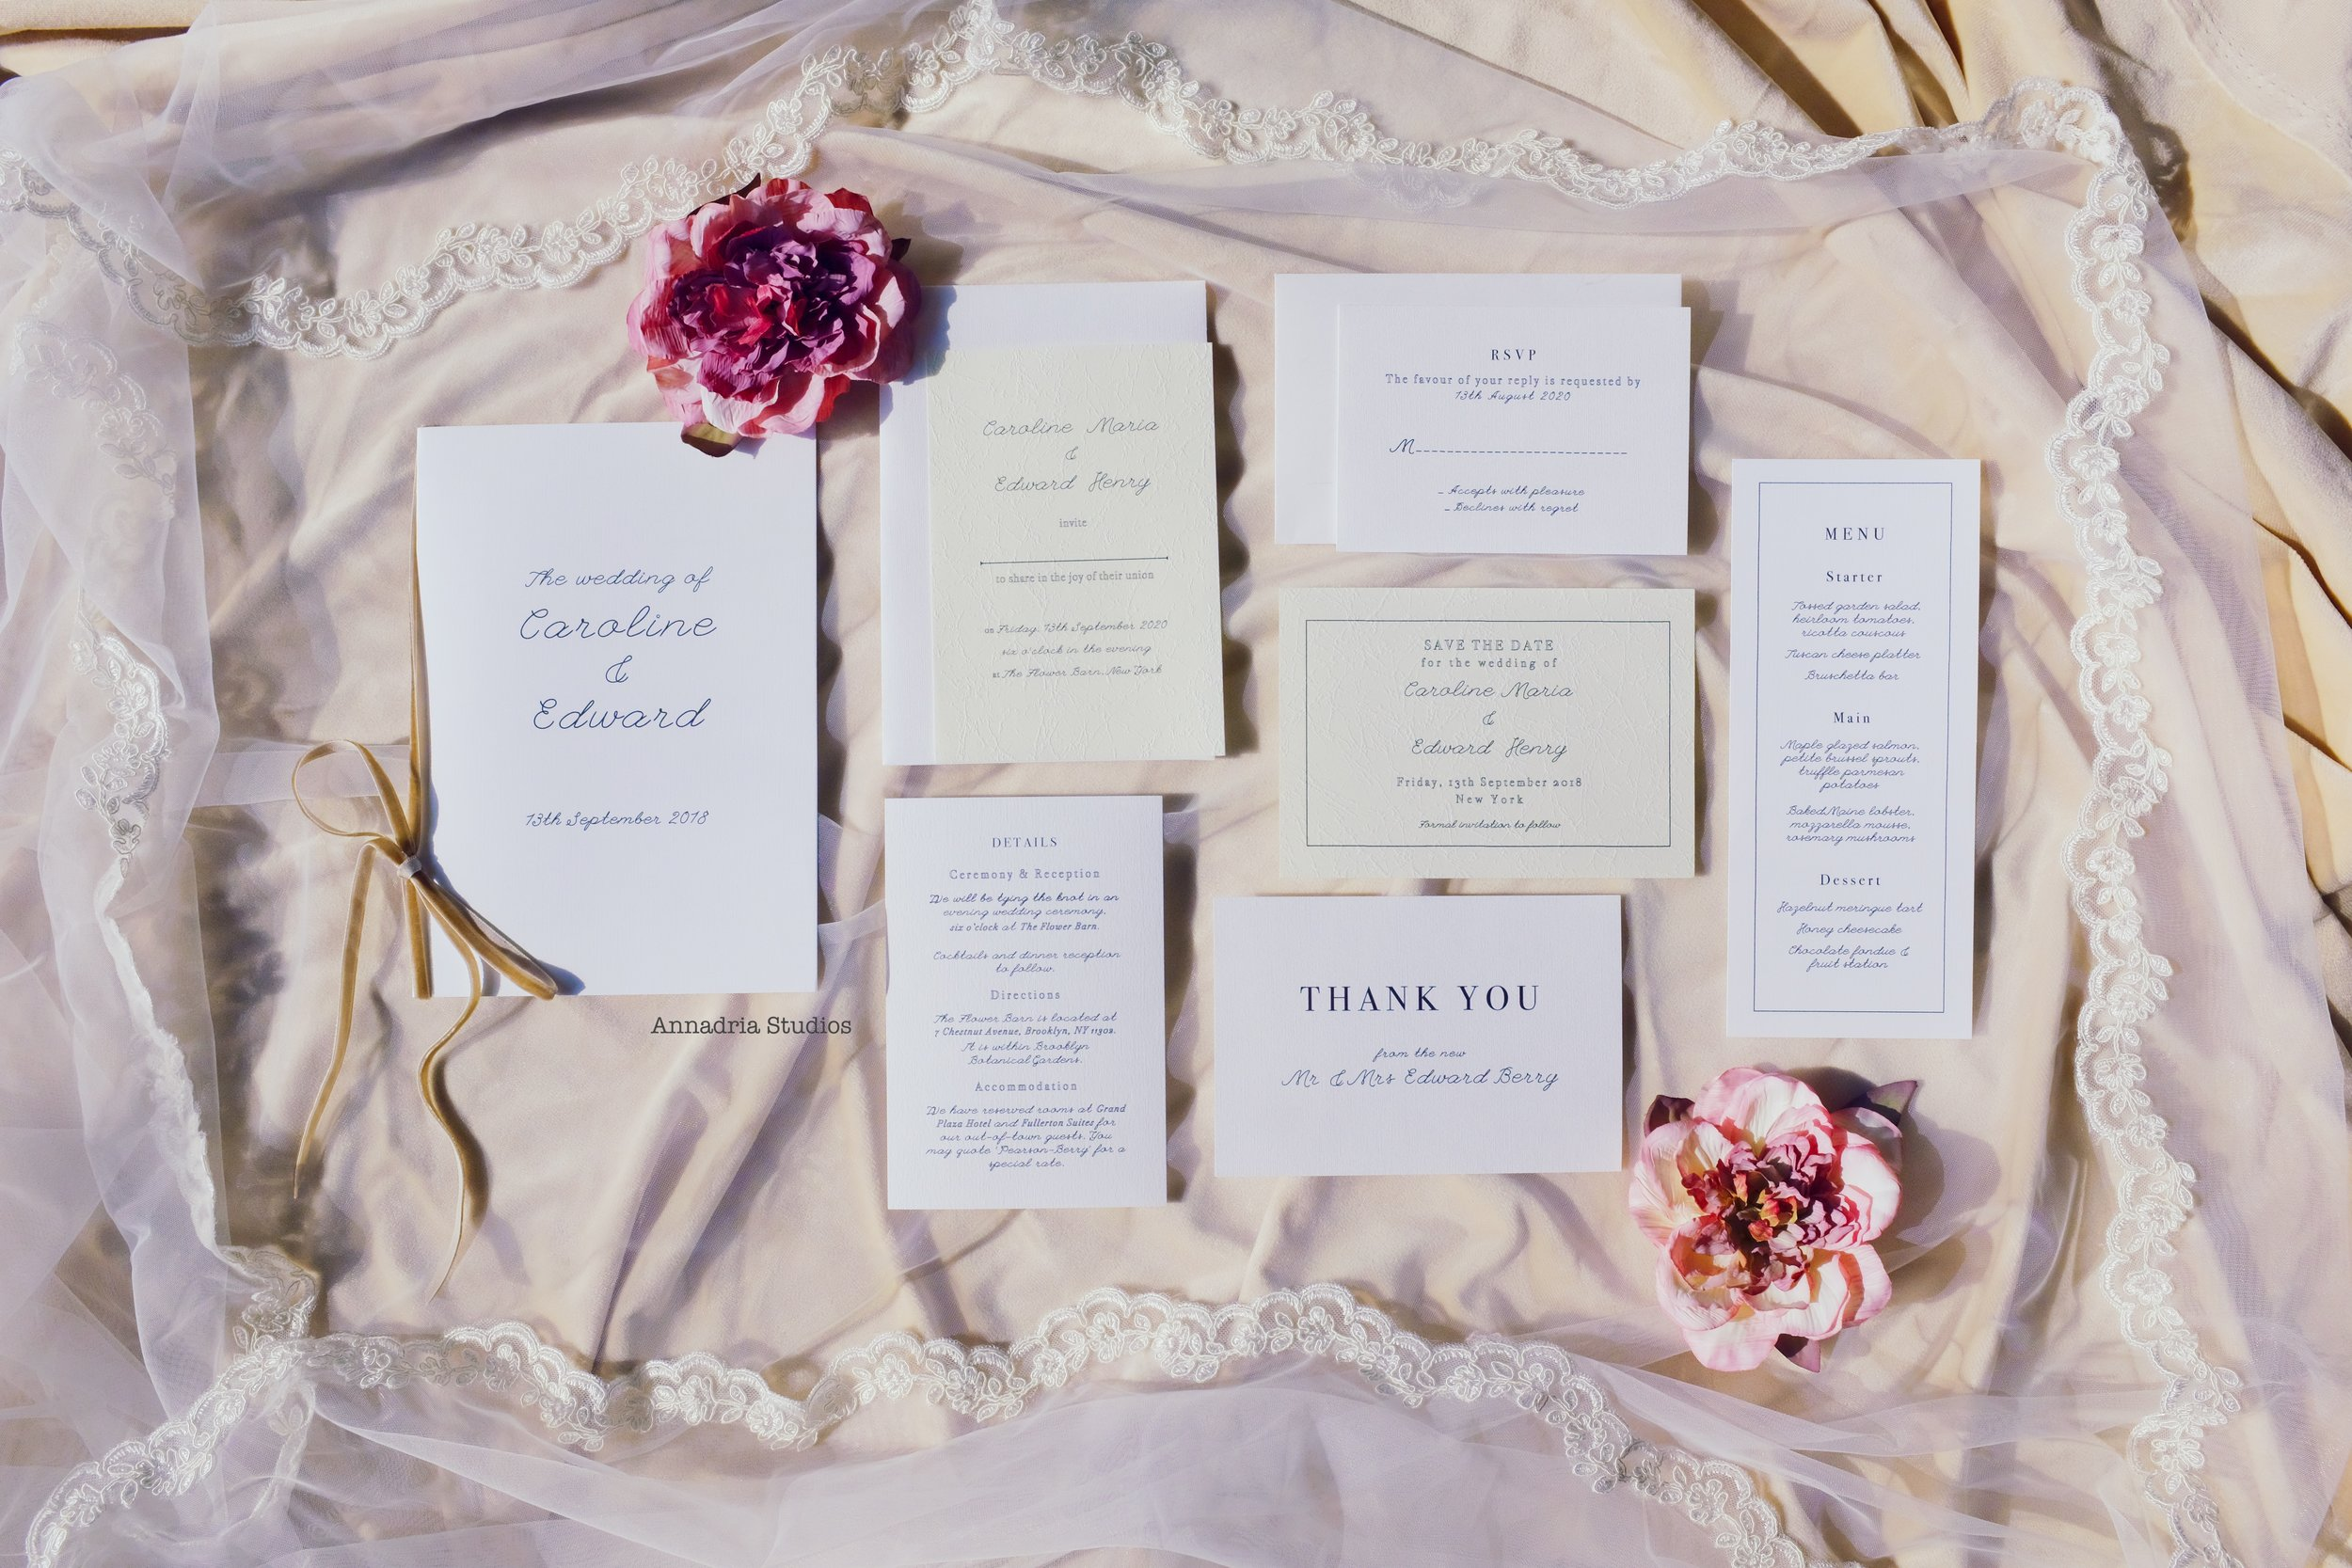 1. - Pick out an invitation suite theme you like from my shop. In this post, I feature my Caroline & Edward suite.